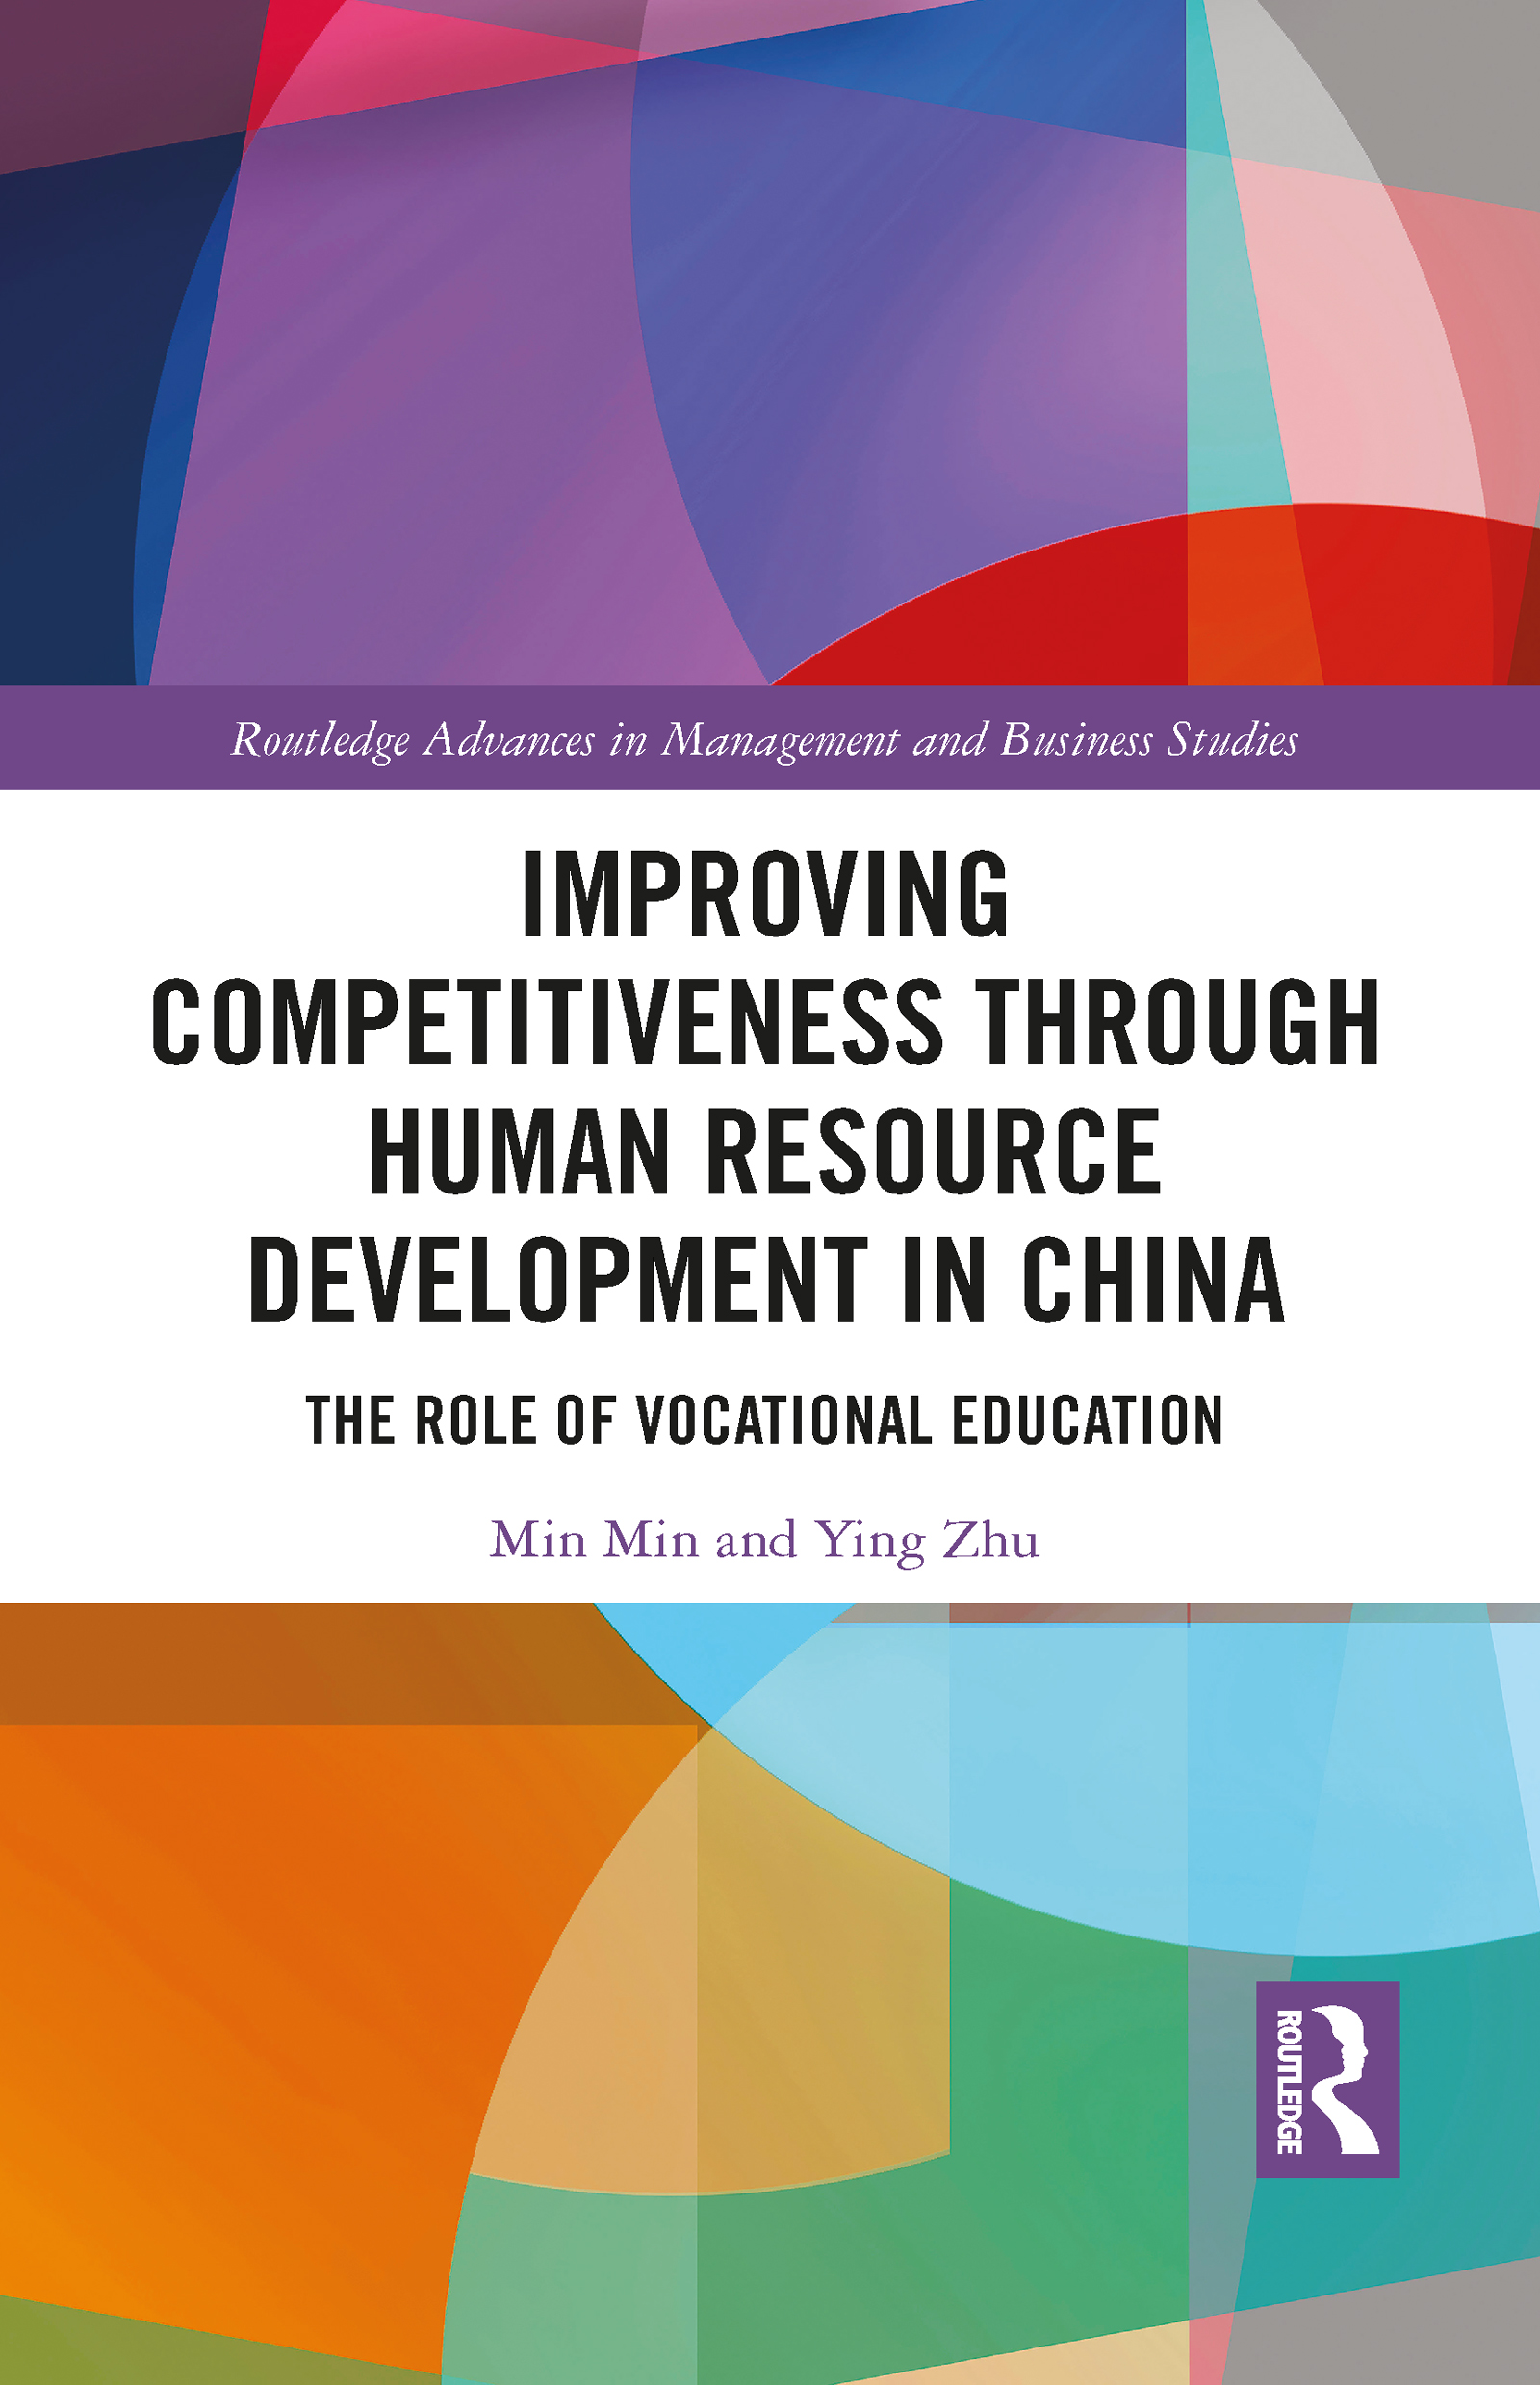 Improving Competitiveness through Human Resource Development in China